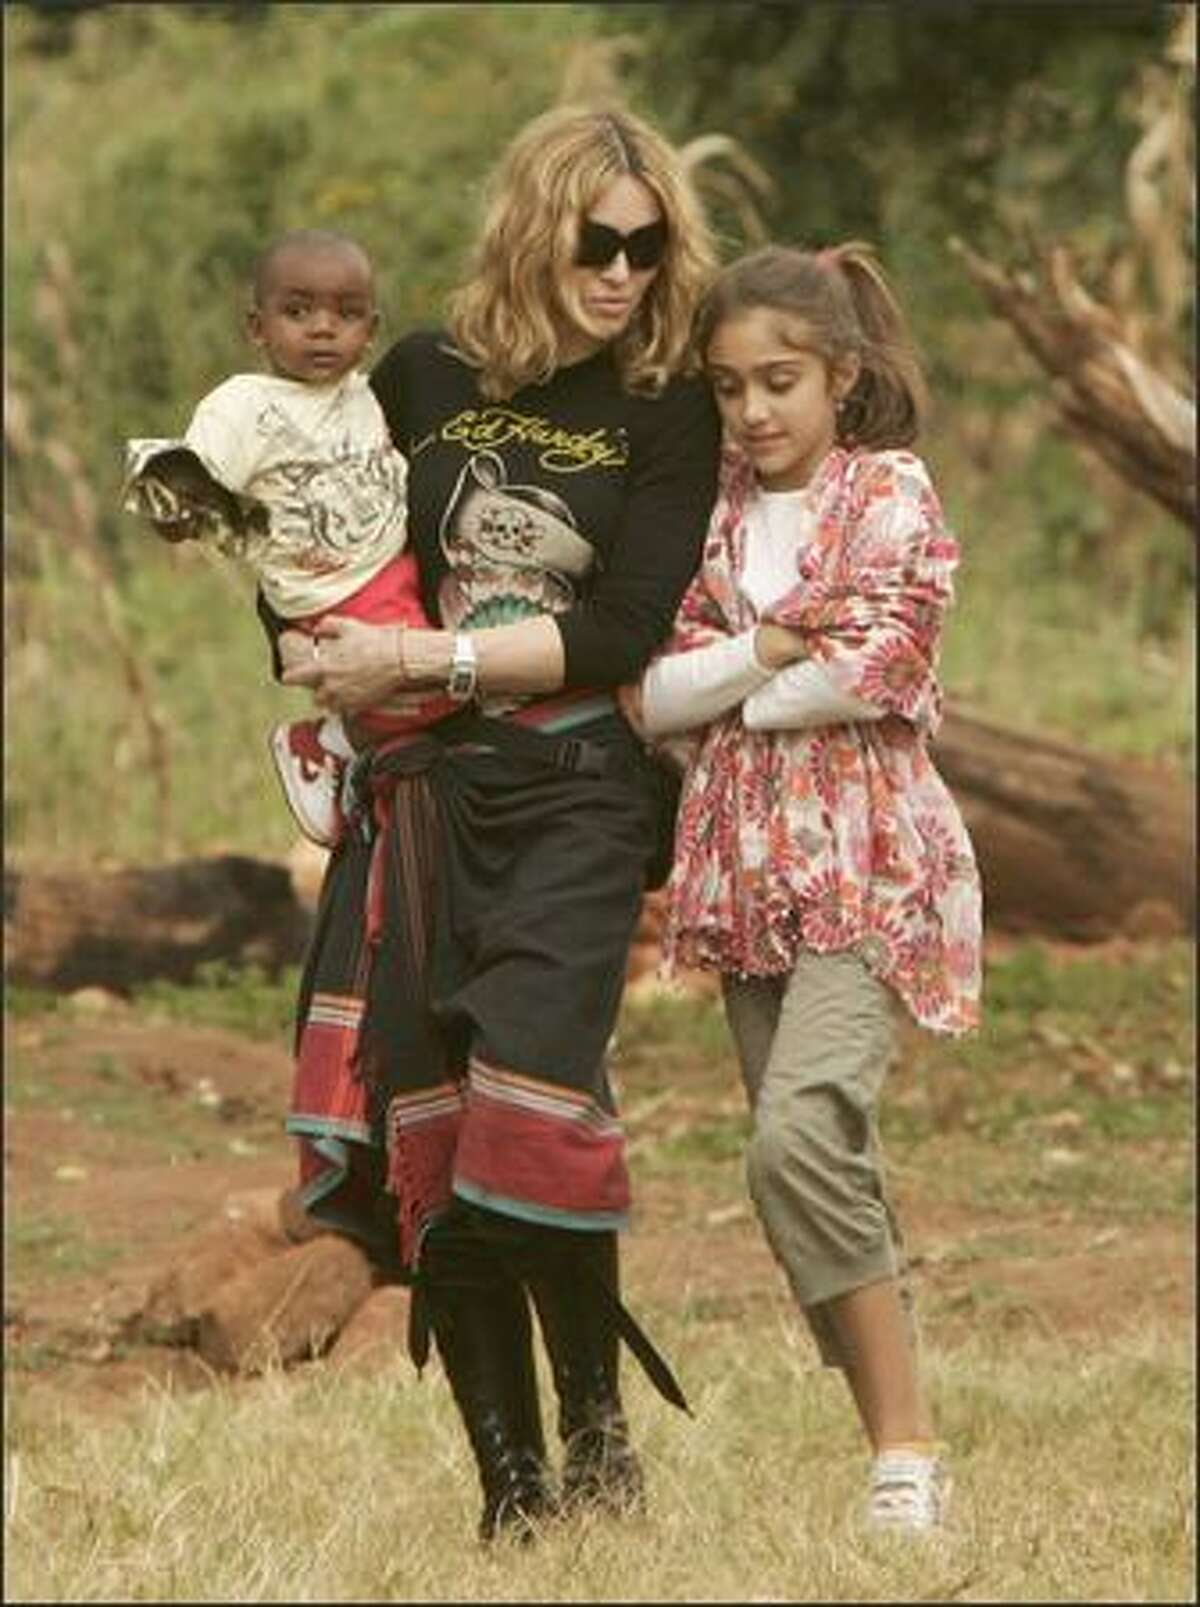 Madonna carries her adopted son David at the Home of Hope orphanage in Mchinji village, Malawi, April 17, 2007. Malawi police and stone-throwing school students blocked journalists from covering the pop star's visit to the orphanage, where the boy was due to meet his biological father. At right is Madonna's daughter Lourdes.